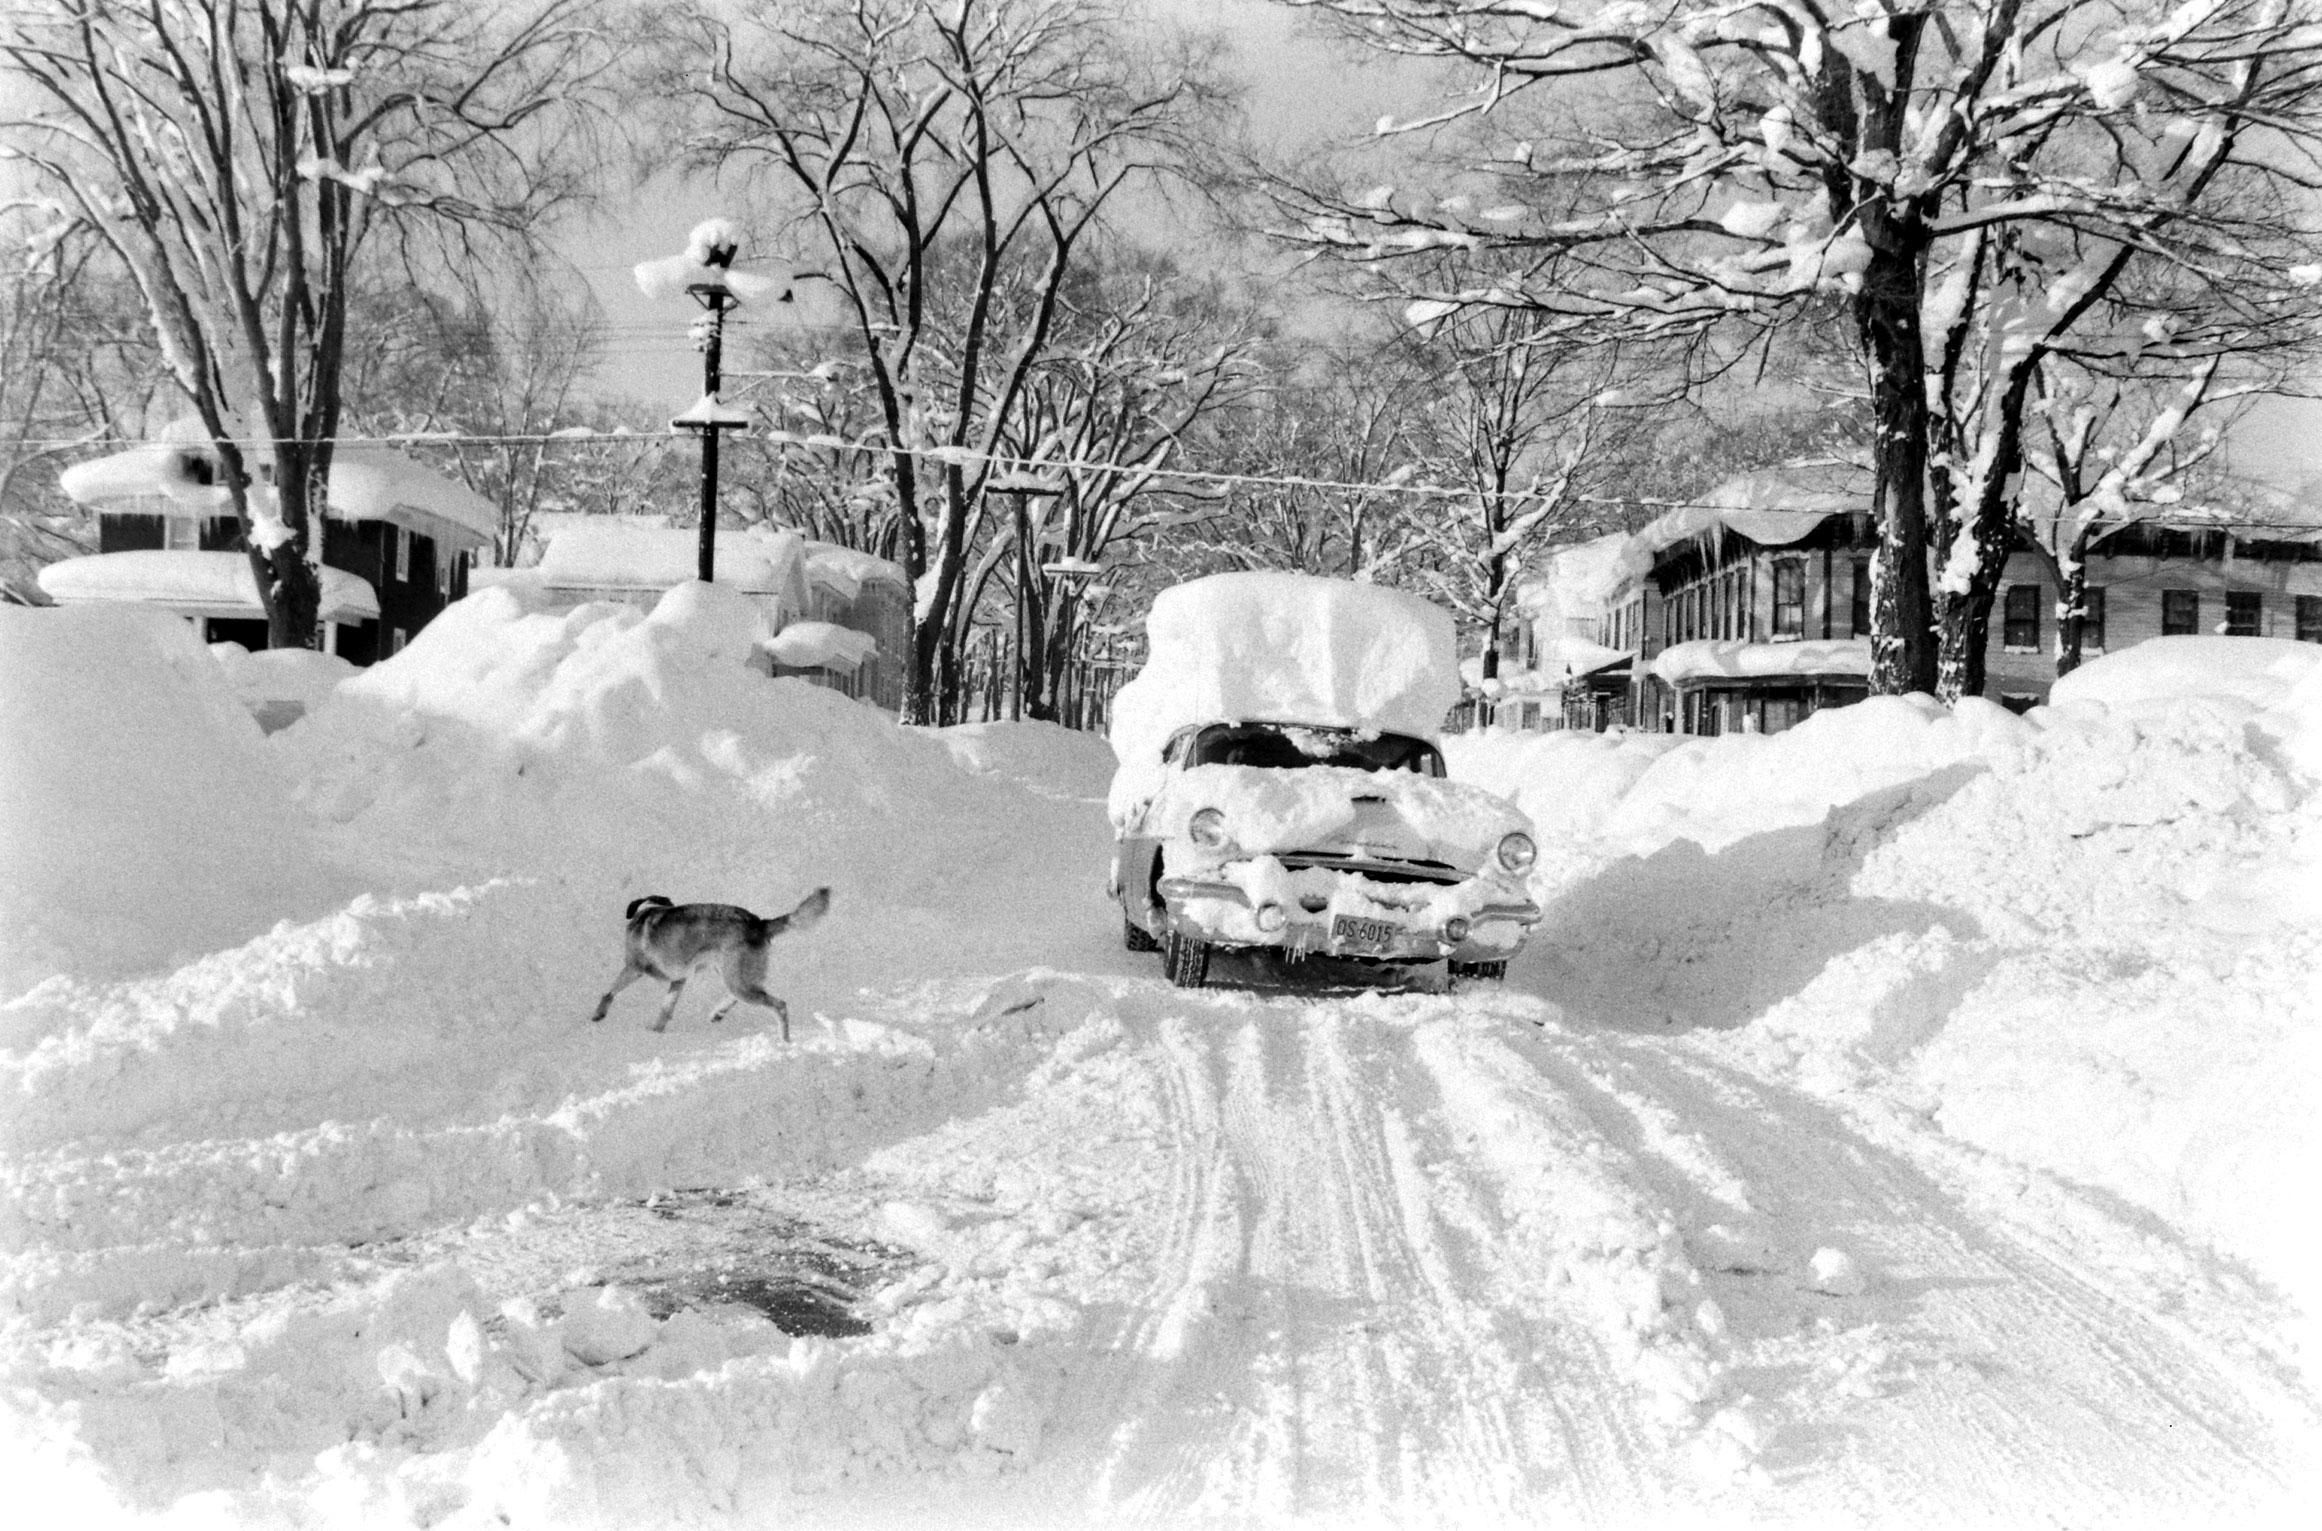 See photos from a 1958 storm that dumped six feet of snow on new york